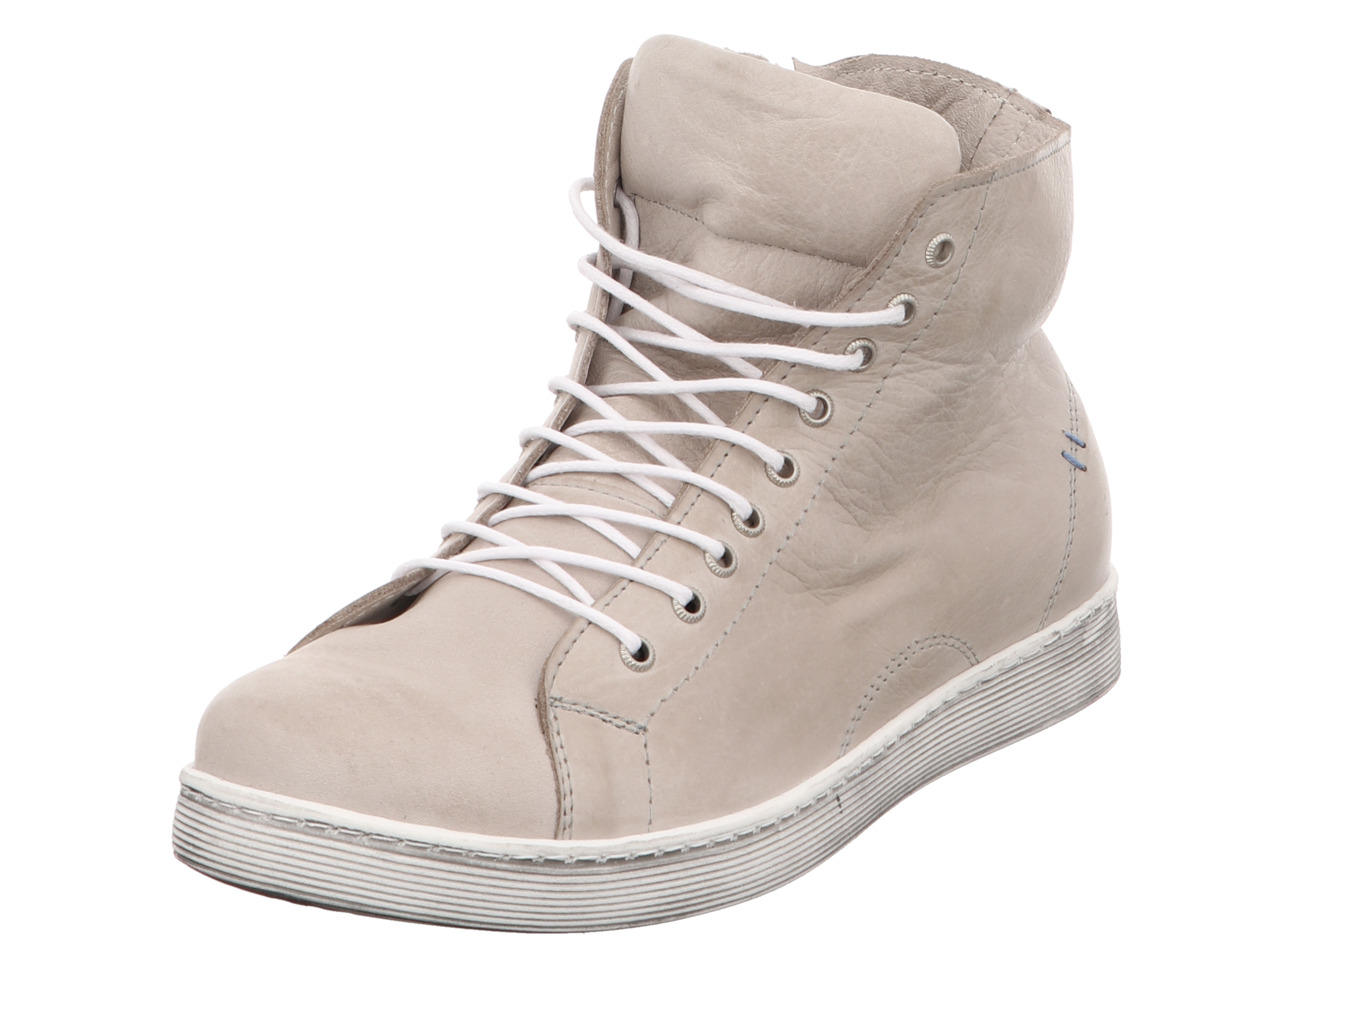 andrea_conti_d_boots_kalt_taupe_0341500_066_taupe_1176